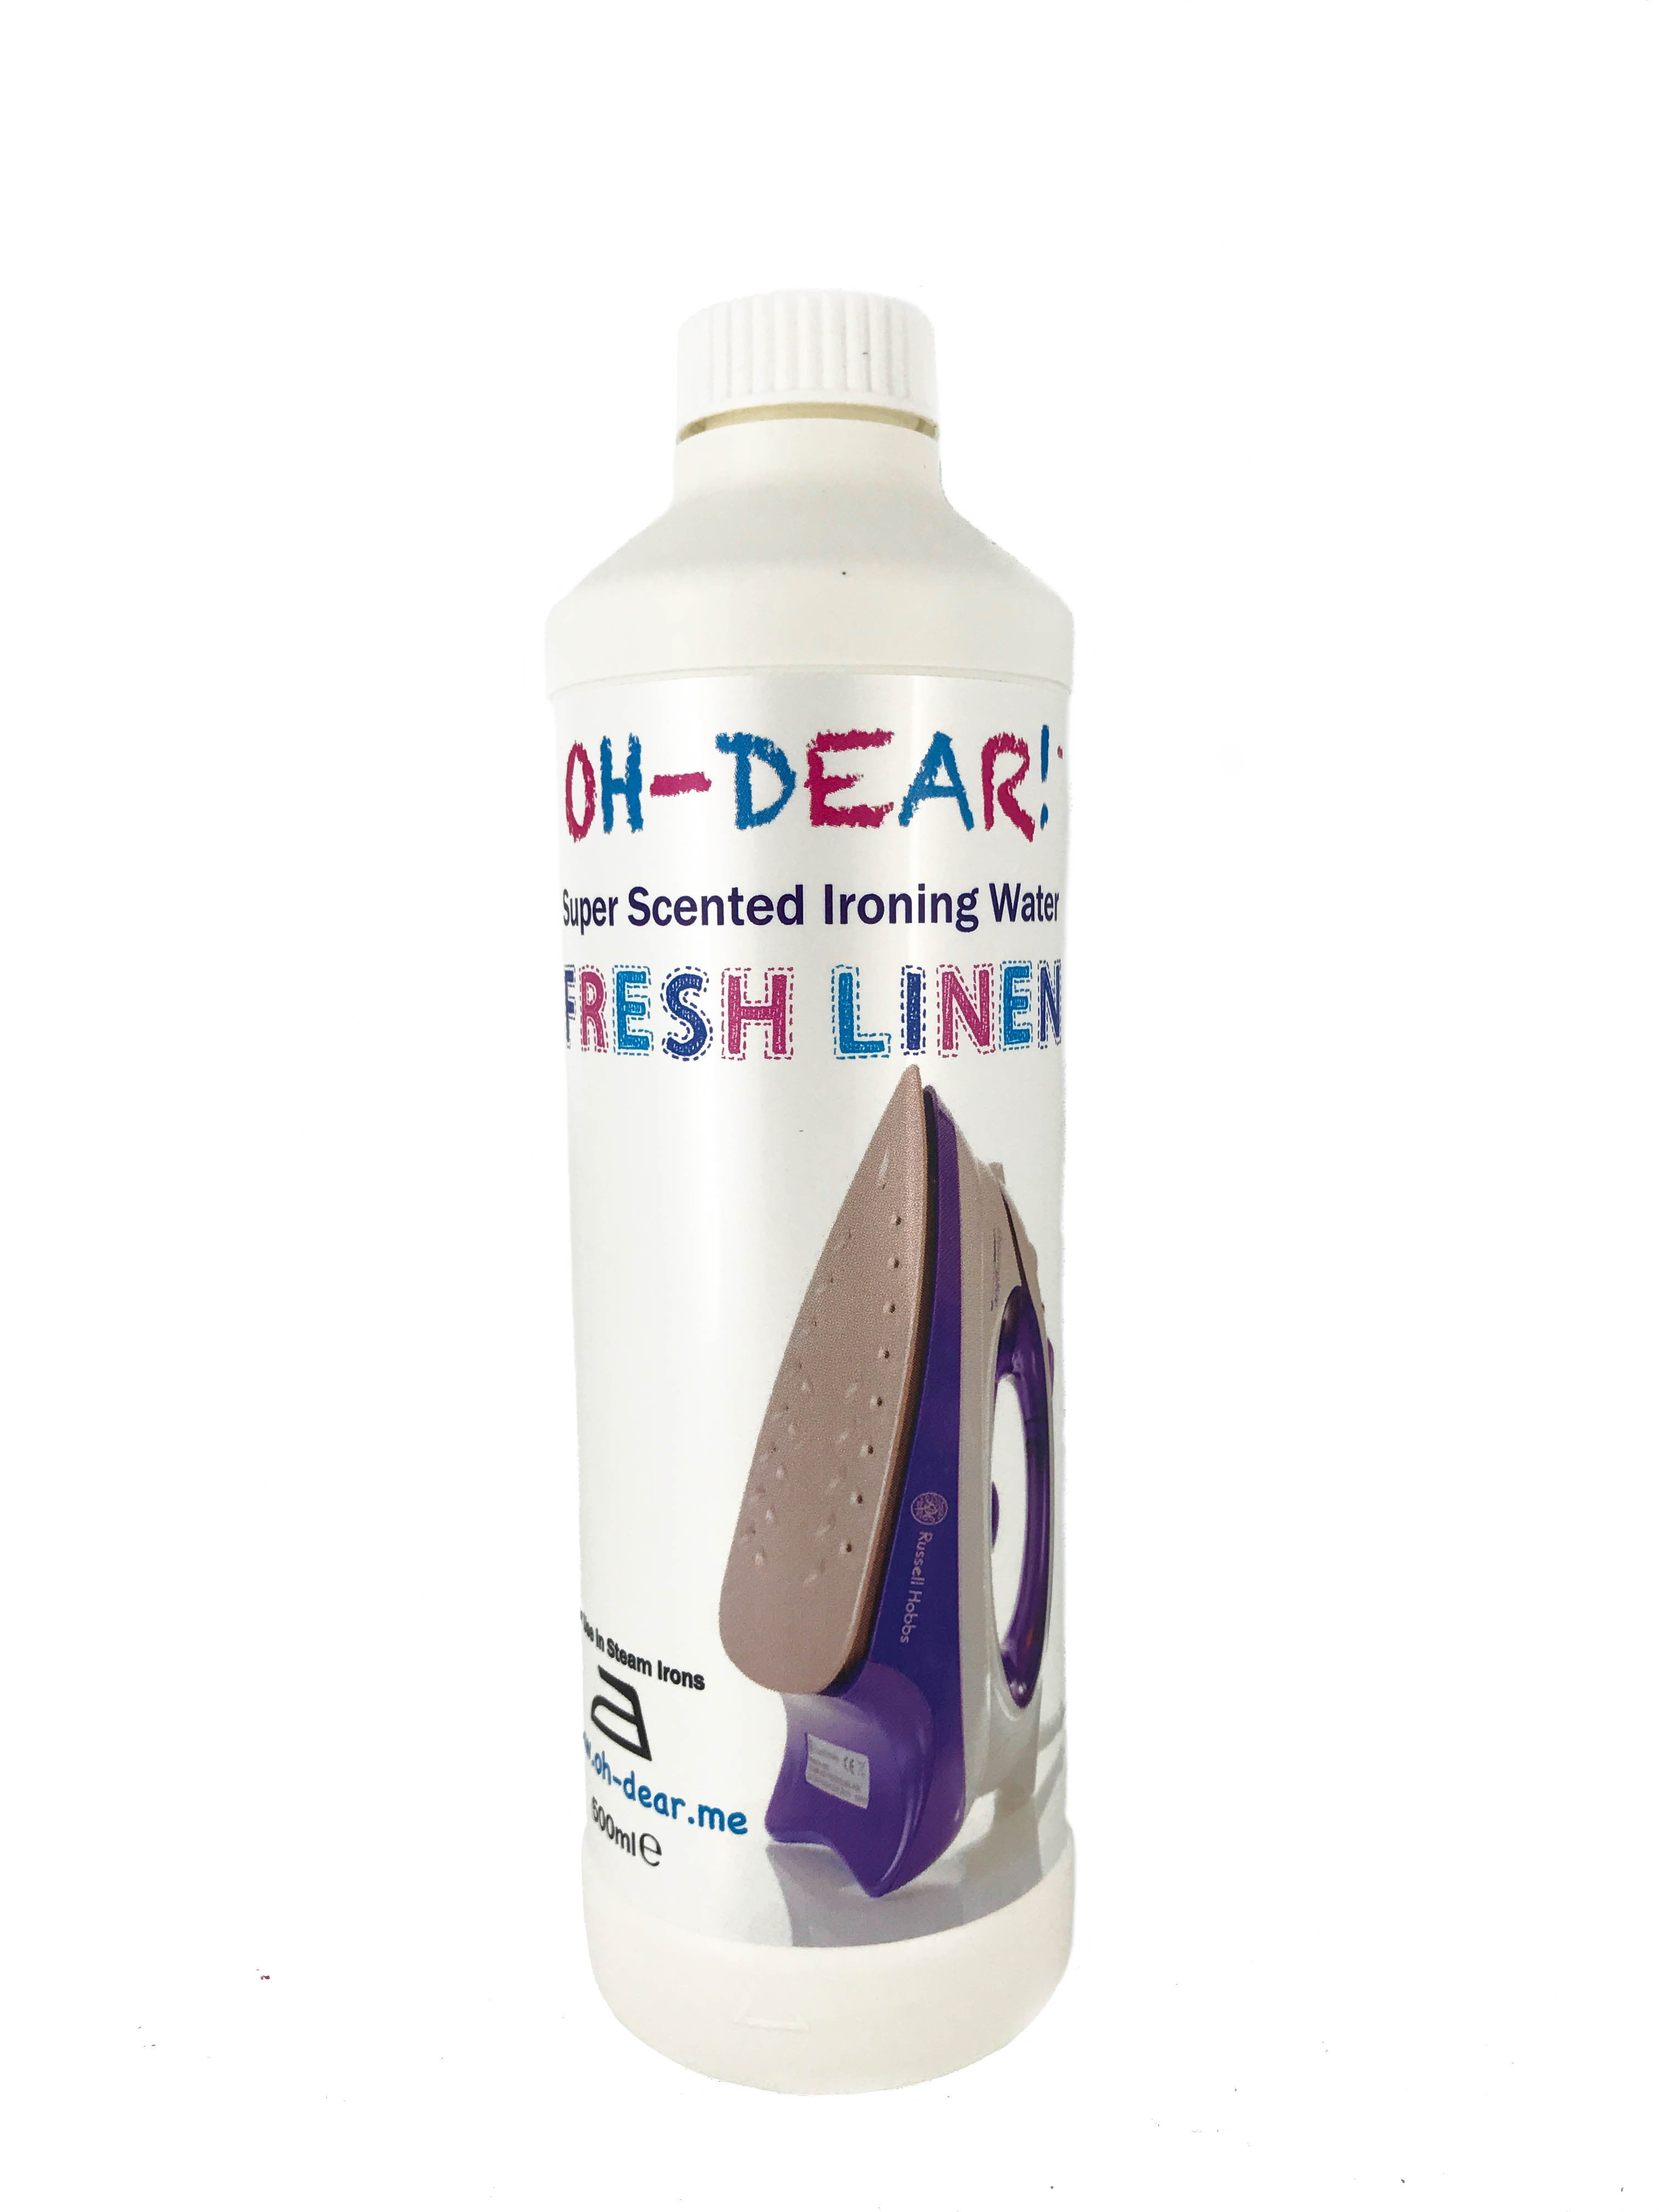 OH-DEAR! Super Scented Ironing Water 500ml